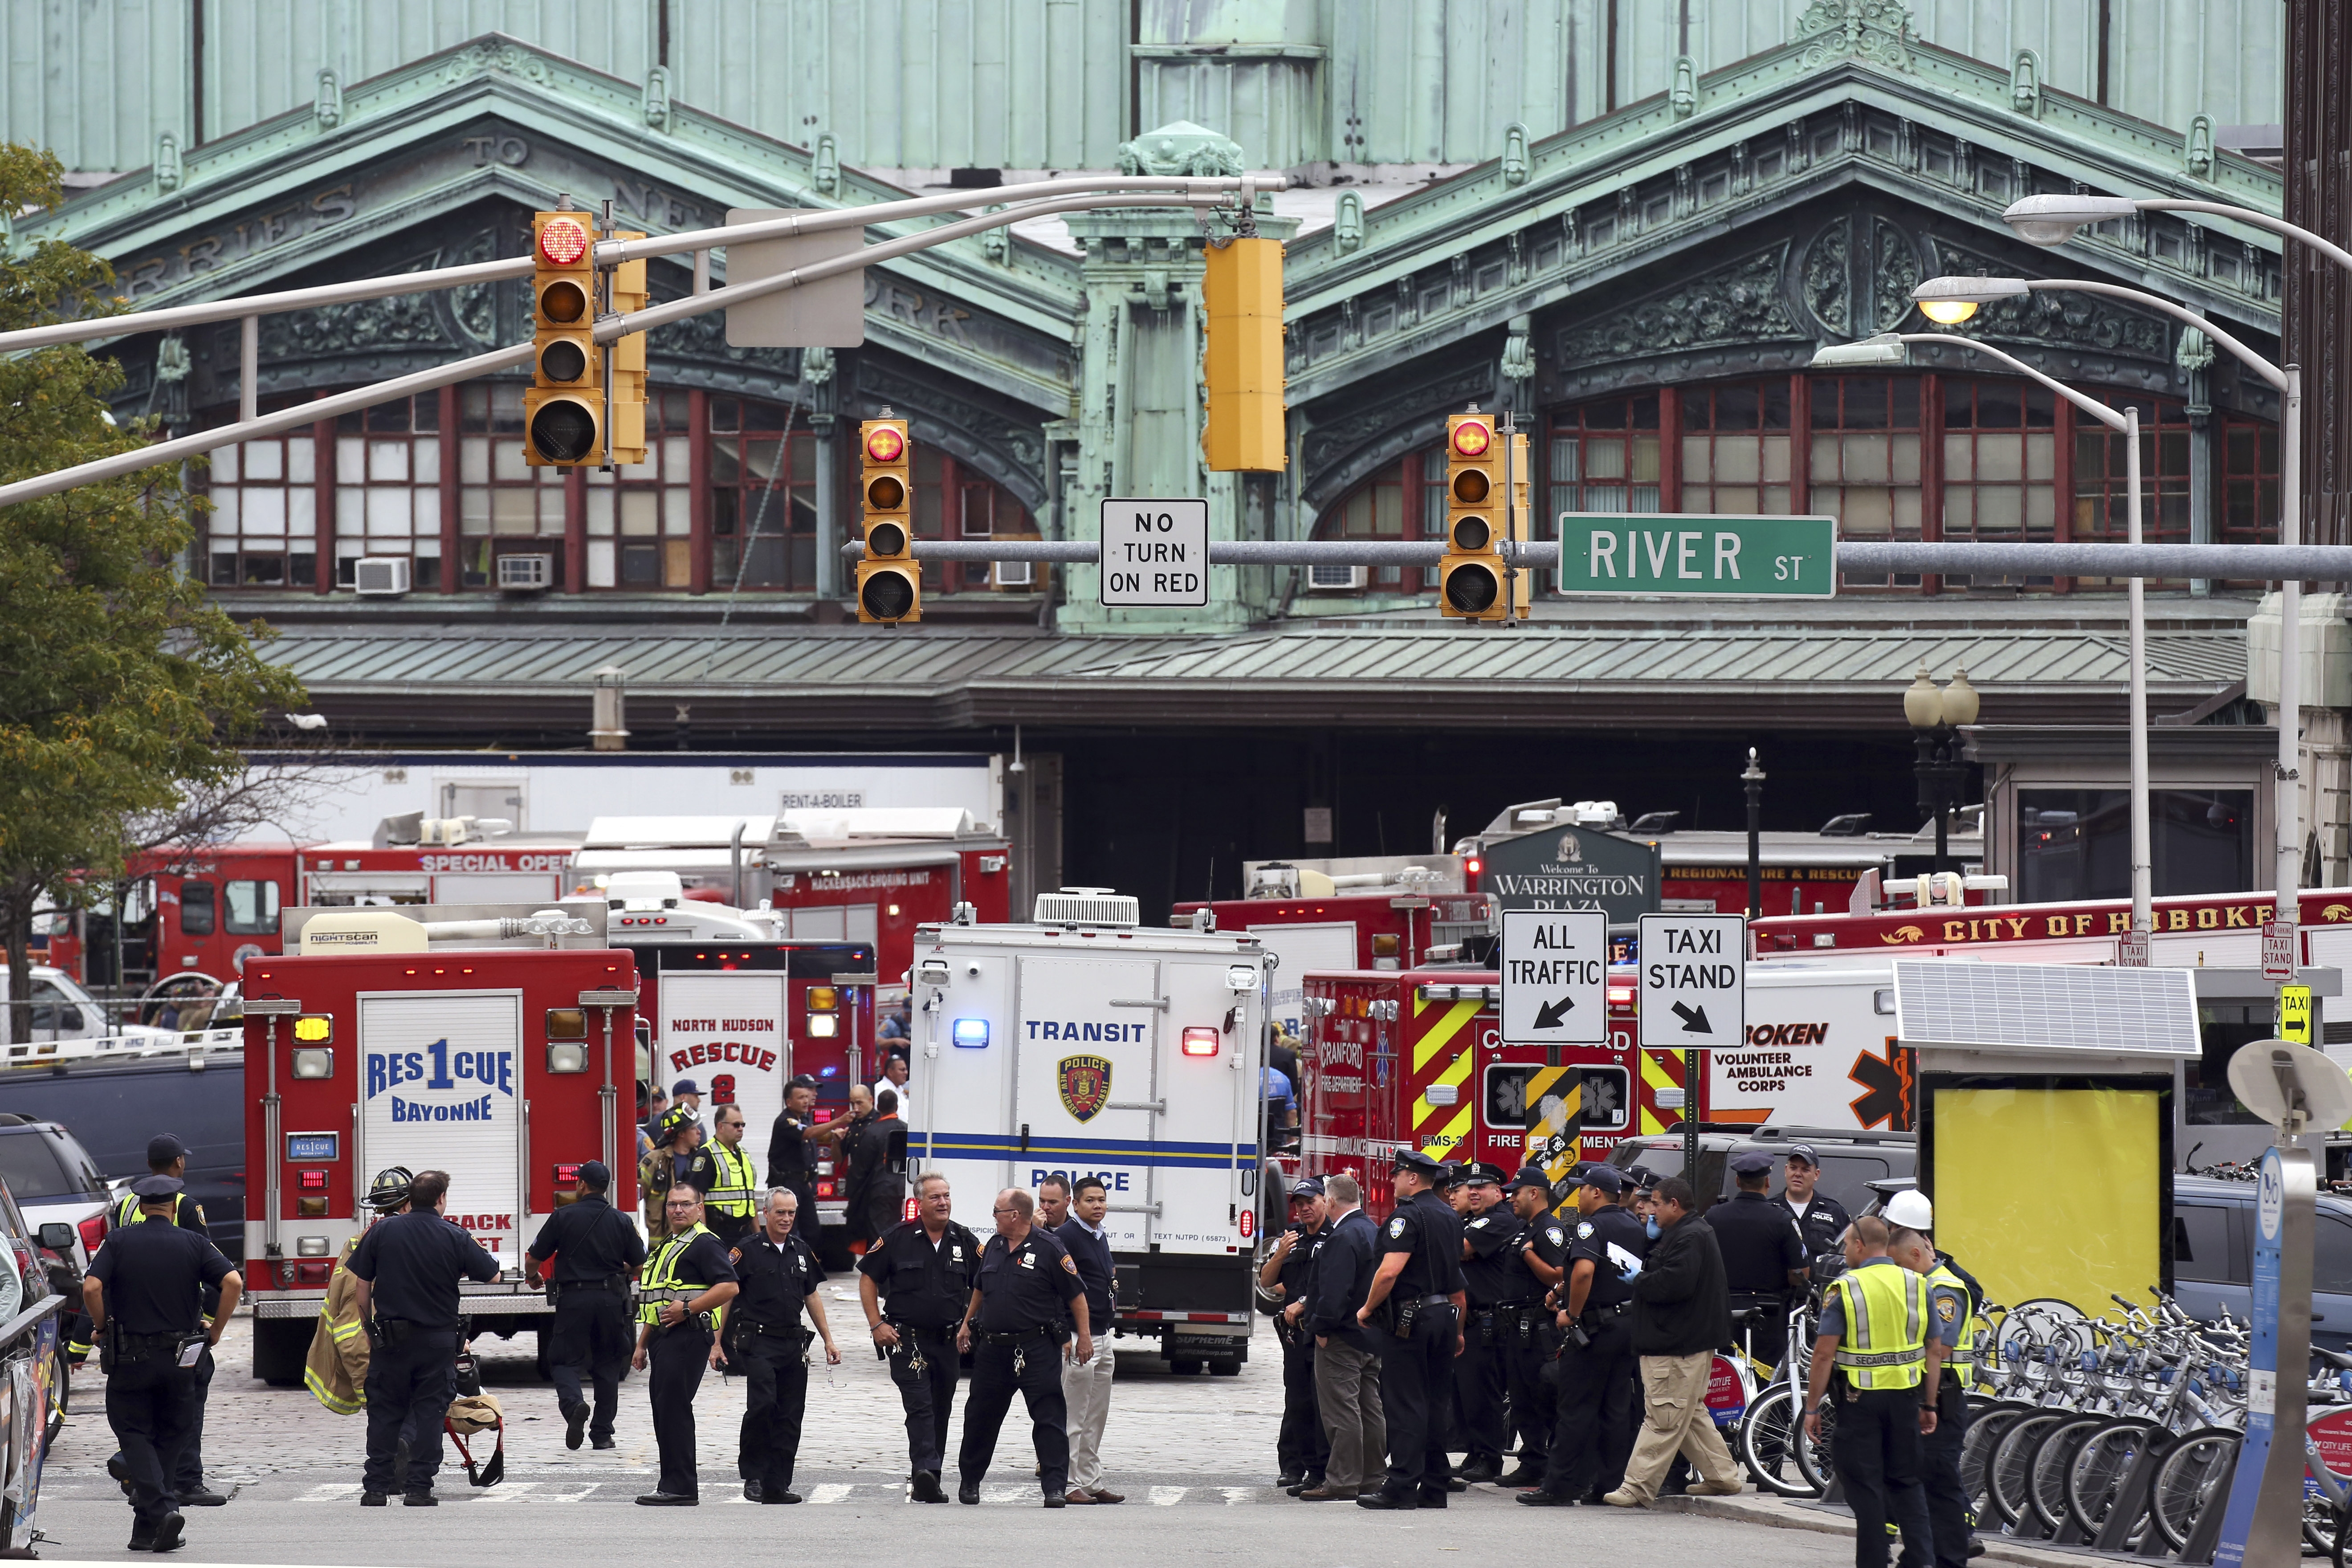 Emergency responders outside Hoboken Terminal, where a commuter train crashed into a station, in Hoboken, N.J., Sept. 29, 2016. The train crashed during the Thursday morning rush, killing at least one person and injuring about 100 people, a number of them seriously, the authorities said. (Richard Perry/The New York Times)